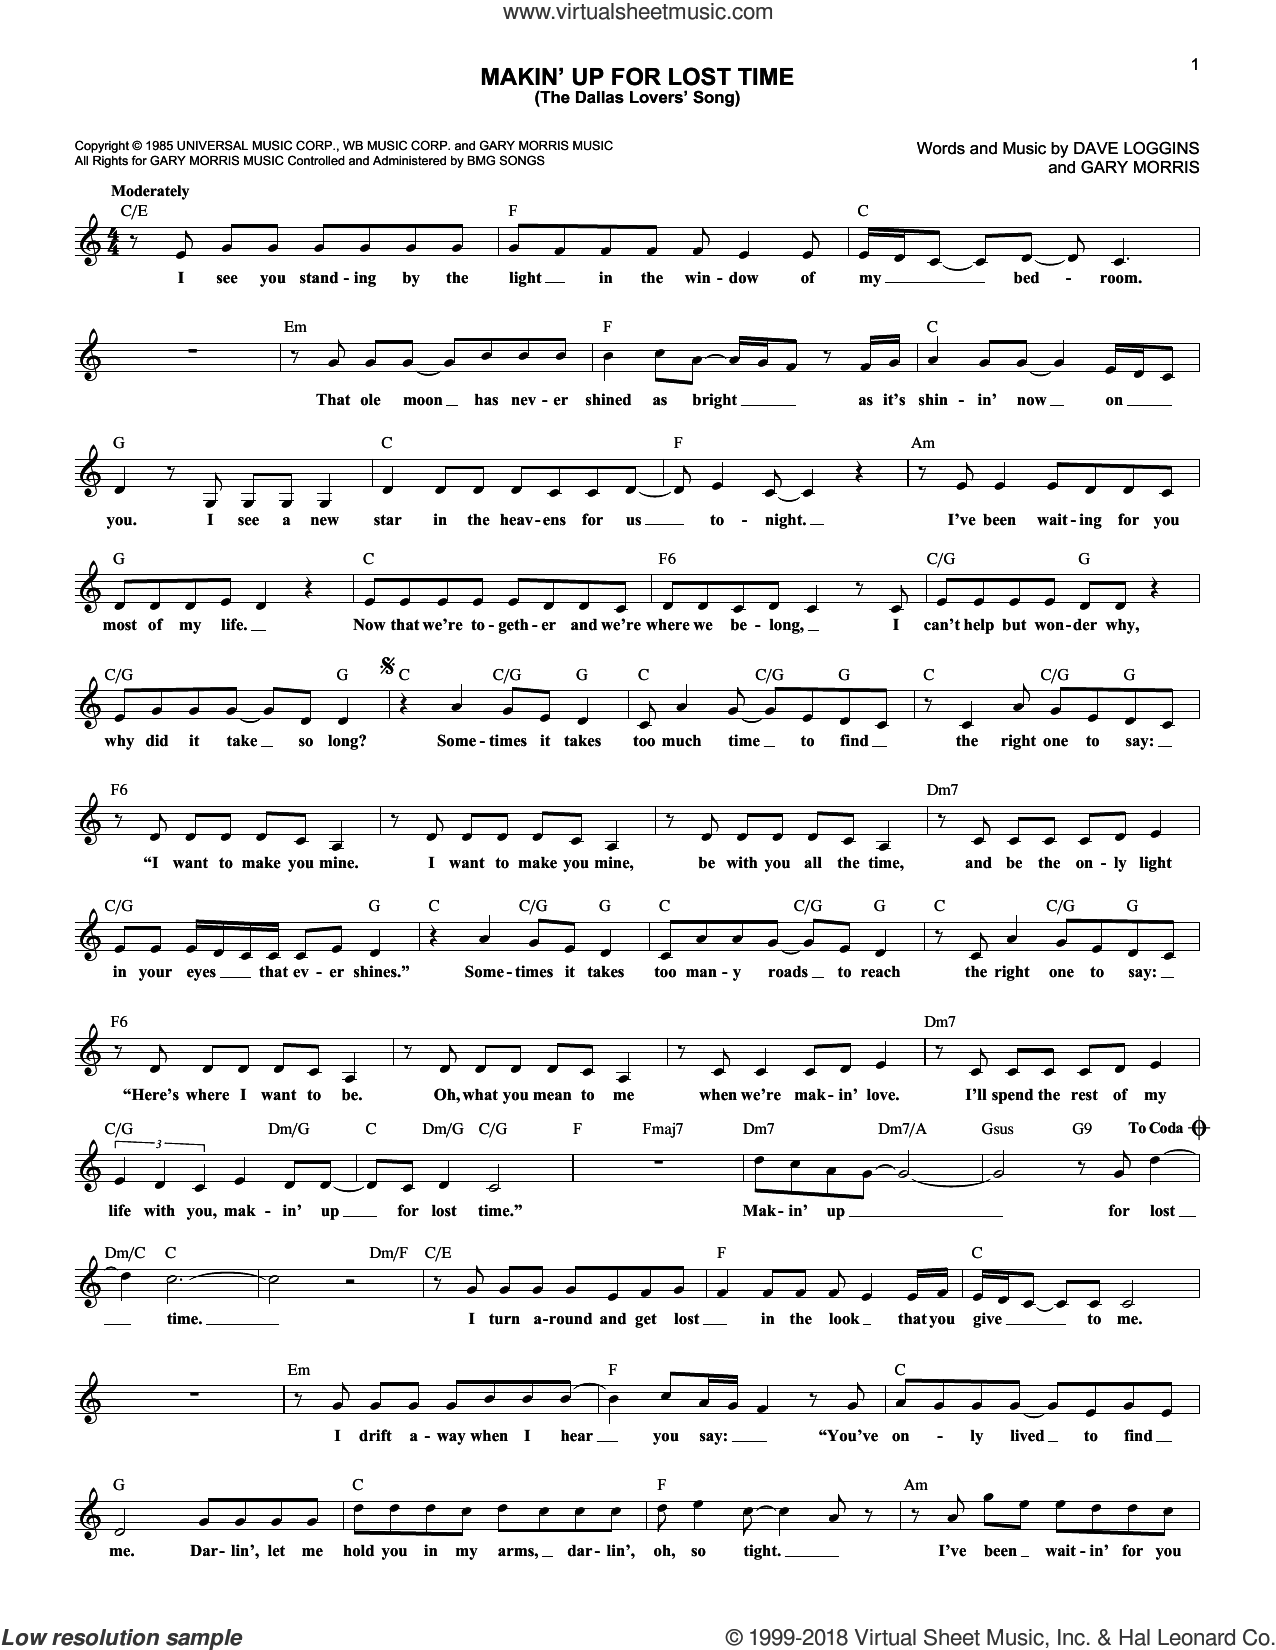 Makin' Up For Lost Time (The Dallas Lovers' Song) sheet music for voice and other instruments (fake book) by Crystal Gayle & Gary Morris, Dave Loggins and Gary Morris, intermediate skill level